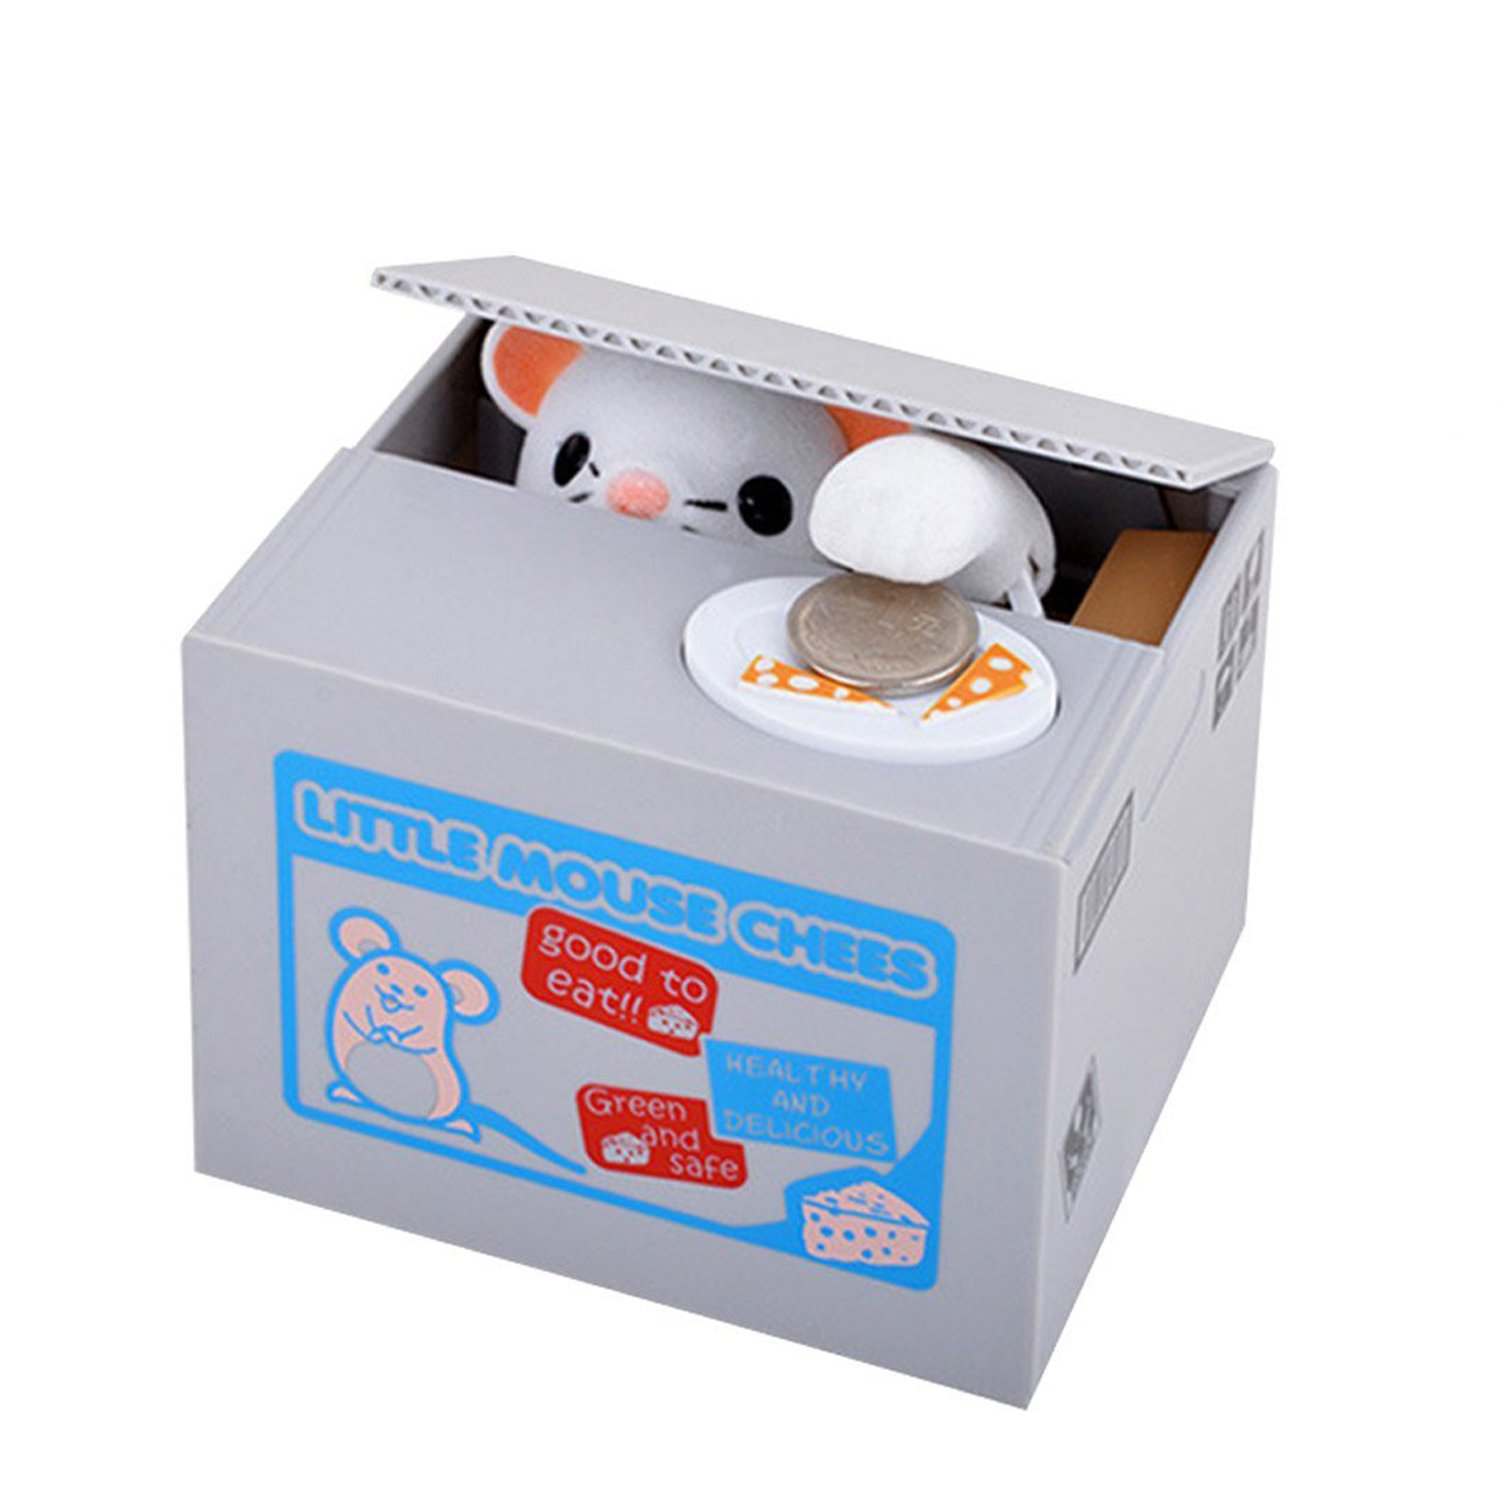 HmiL-U Money Banks Automatic Stealing Coin Cent Penny Cat Money Box With Voice Christmas/Birthday Gift for Kids Child (Grape-Cat)